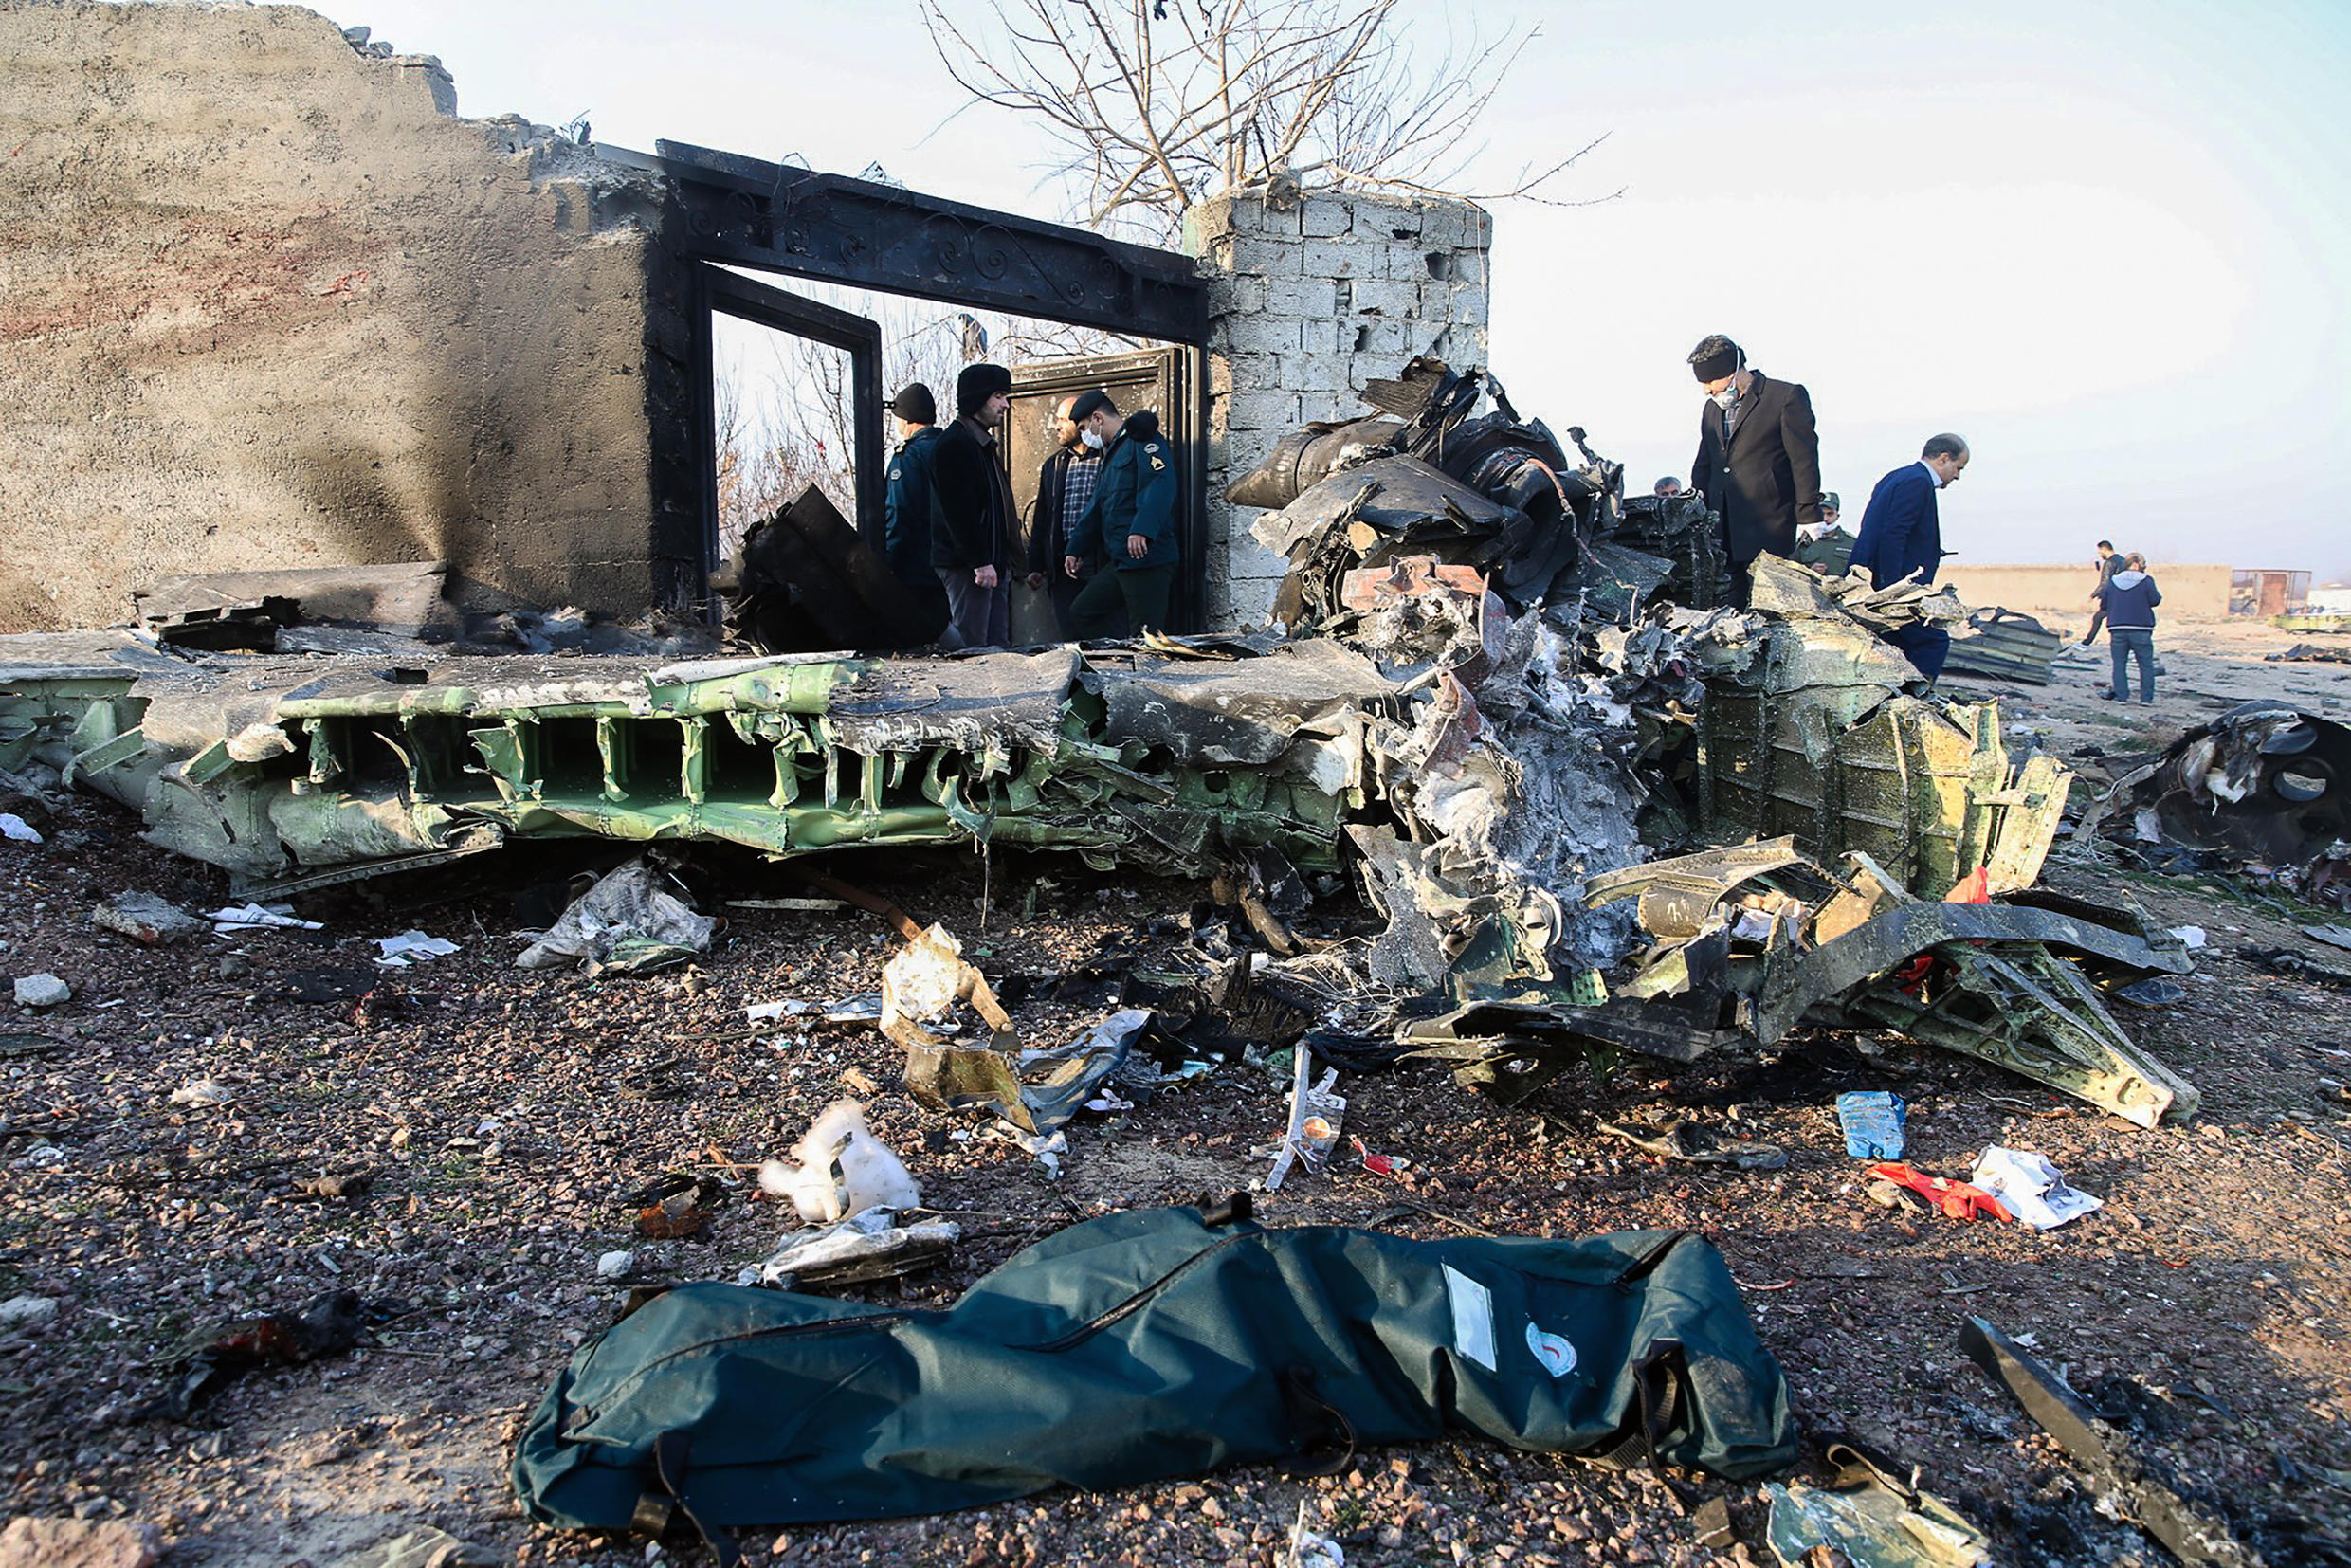 People stand near the wreckage after a Ukrainian plane carrying 176 passengers crashed near Imam Khomeini airport in Tehran on January 8, 2020.